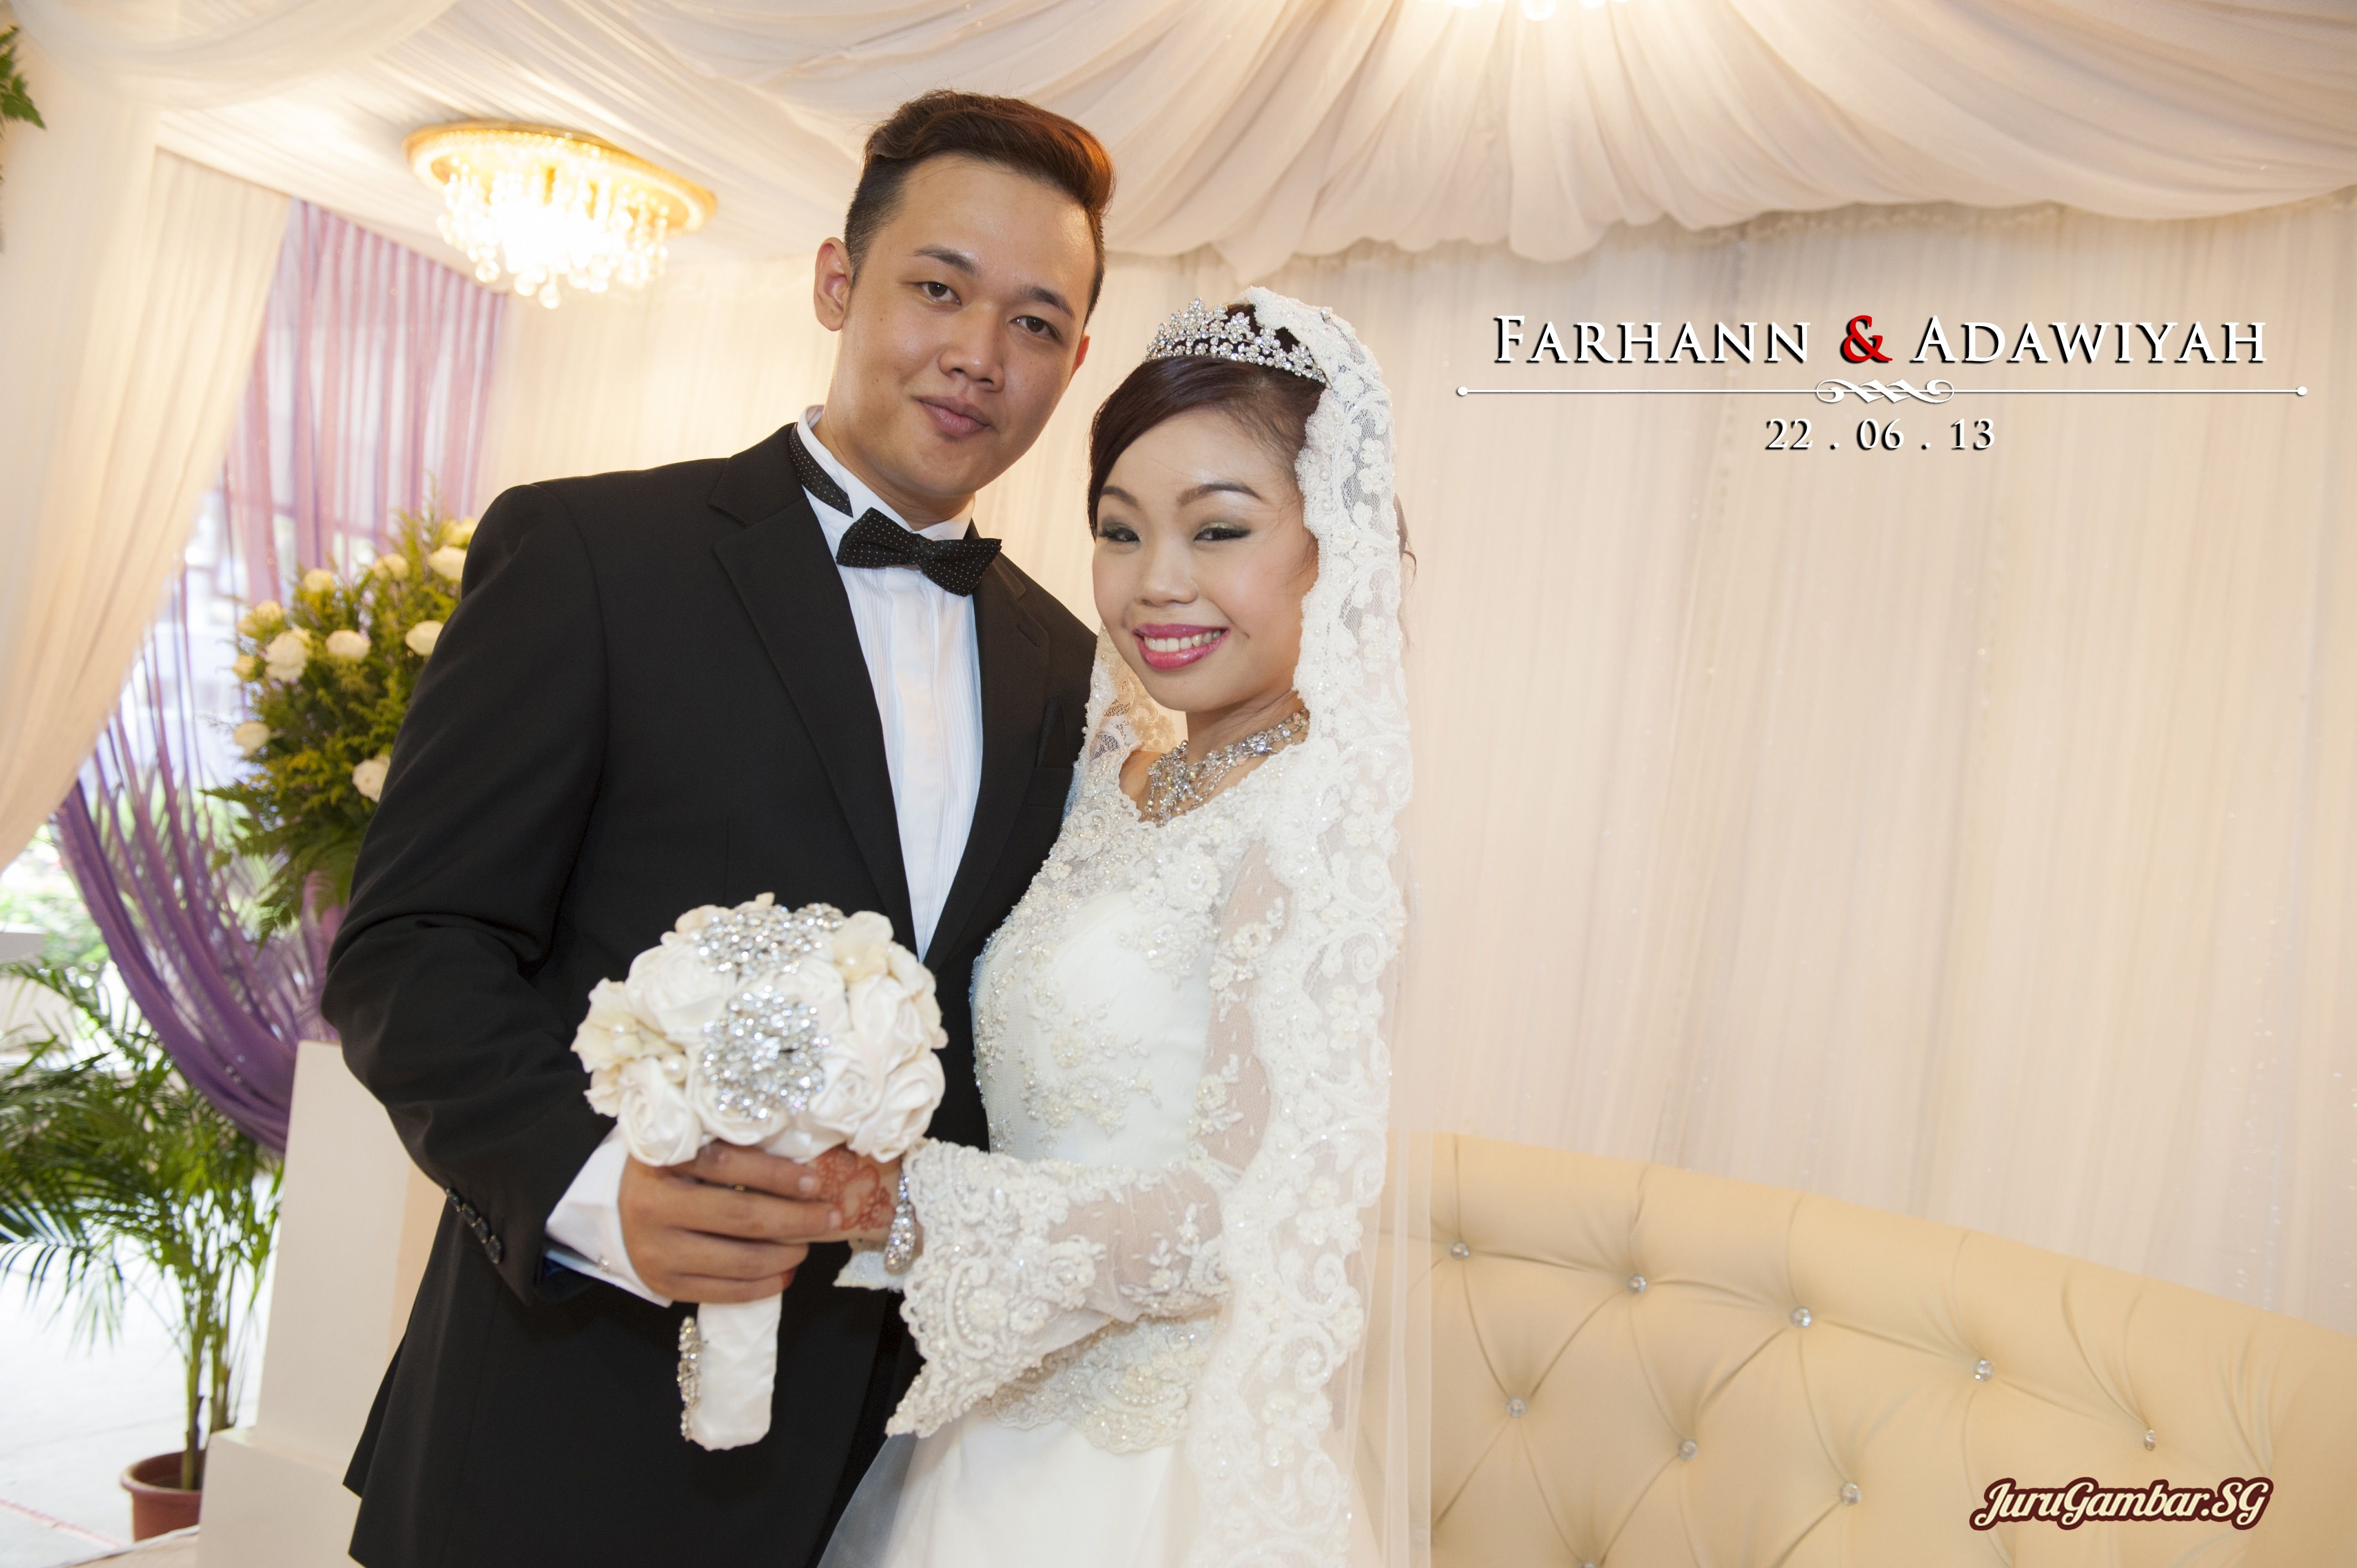 Wedding Poses Outdoor Wedding Photography Malay Wedding Wedding Photography Malay Wedding Photographer Wedding Dresses Wedding Poses Wedding Dresses Lace